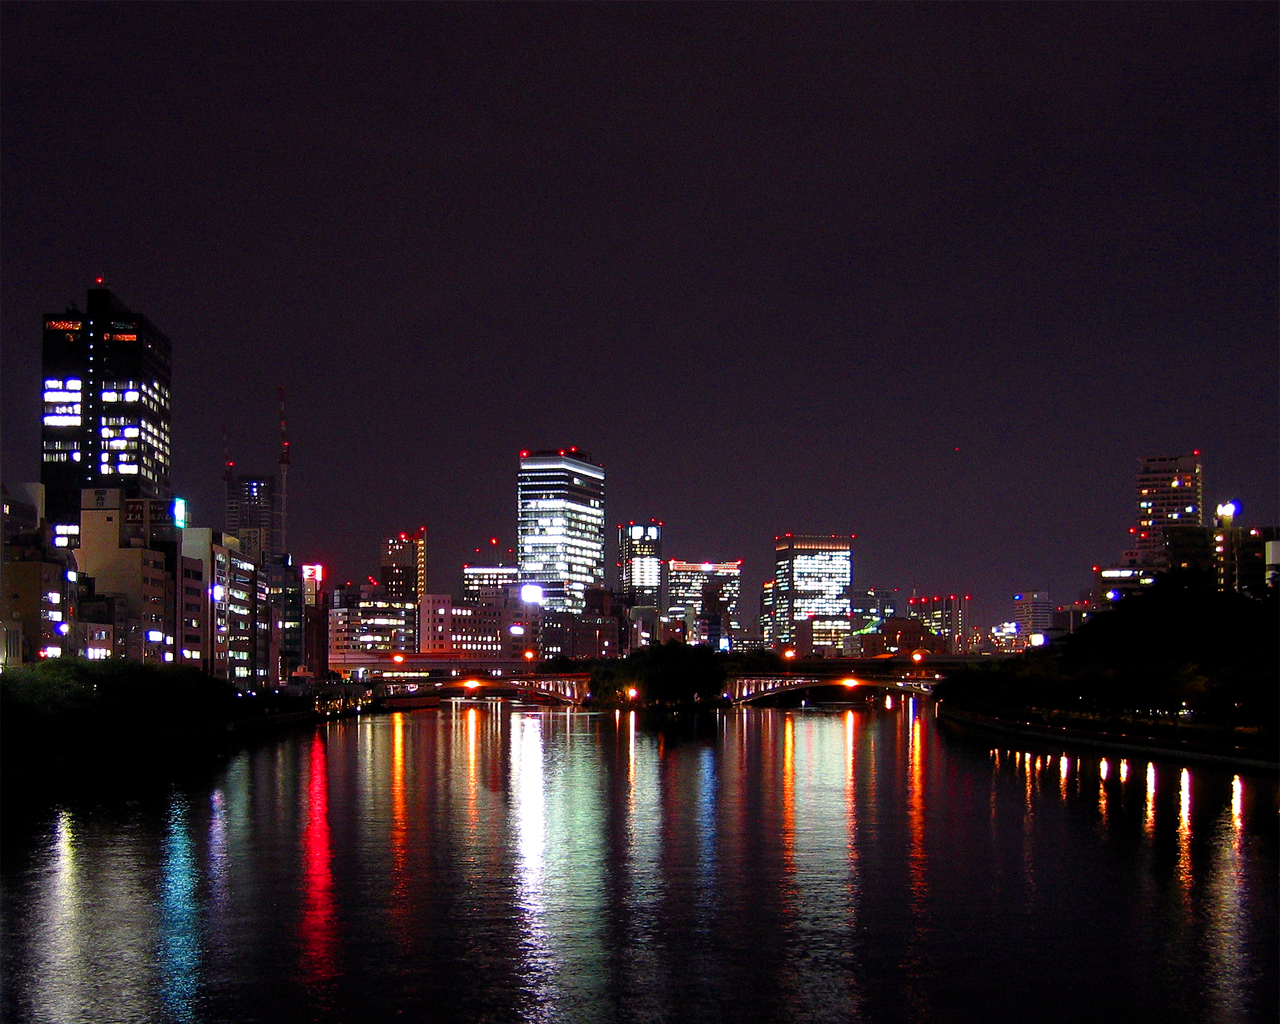 File:Night view Nakanoshima 02.jpg - Wikimedia Commons Night